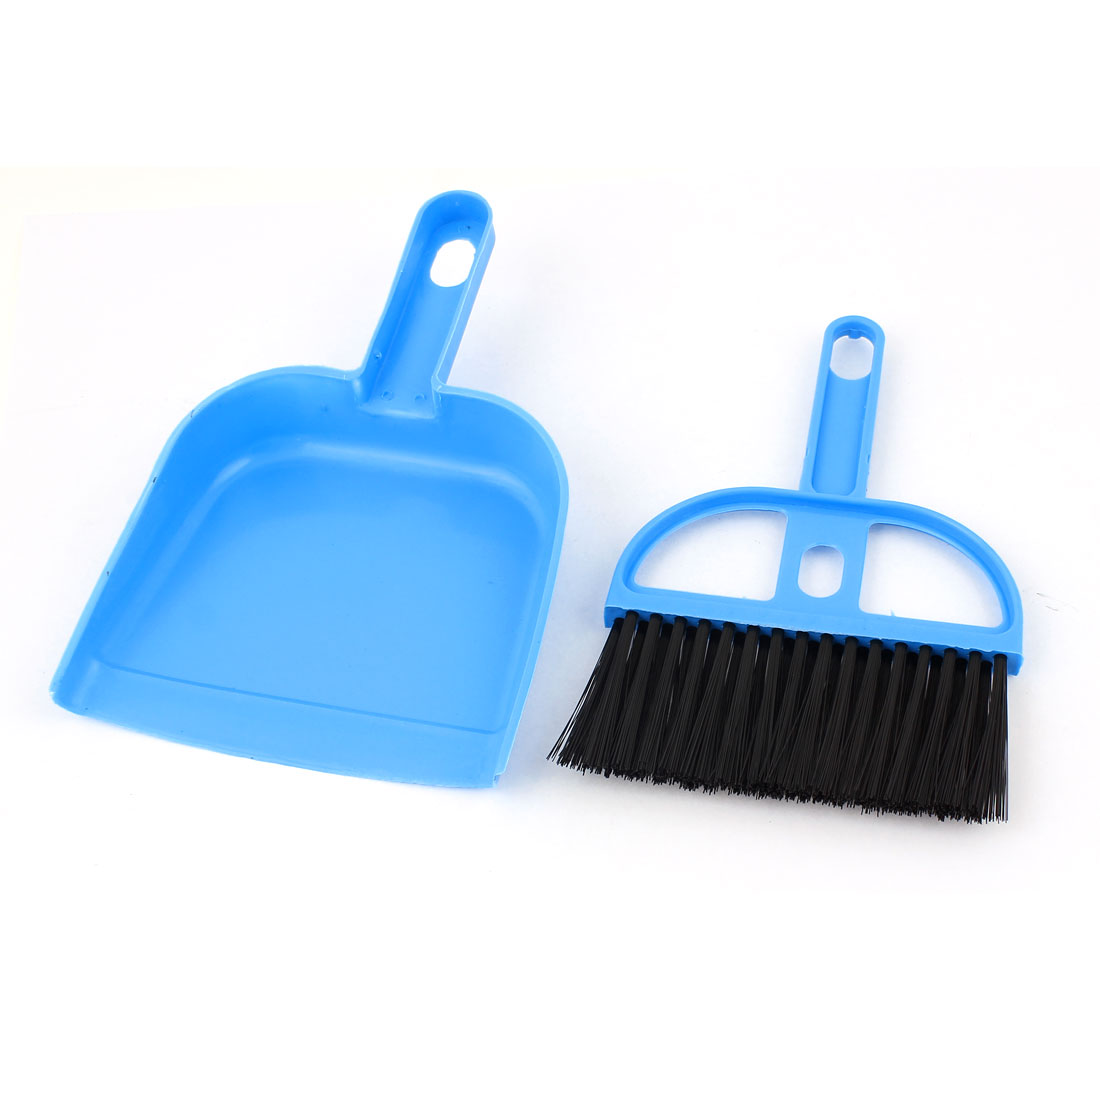 Portable Home PC Desk Computer Keyboard Duster Cleaning Cleaner Brush Blue